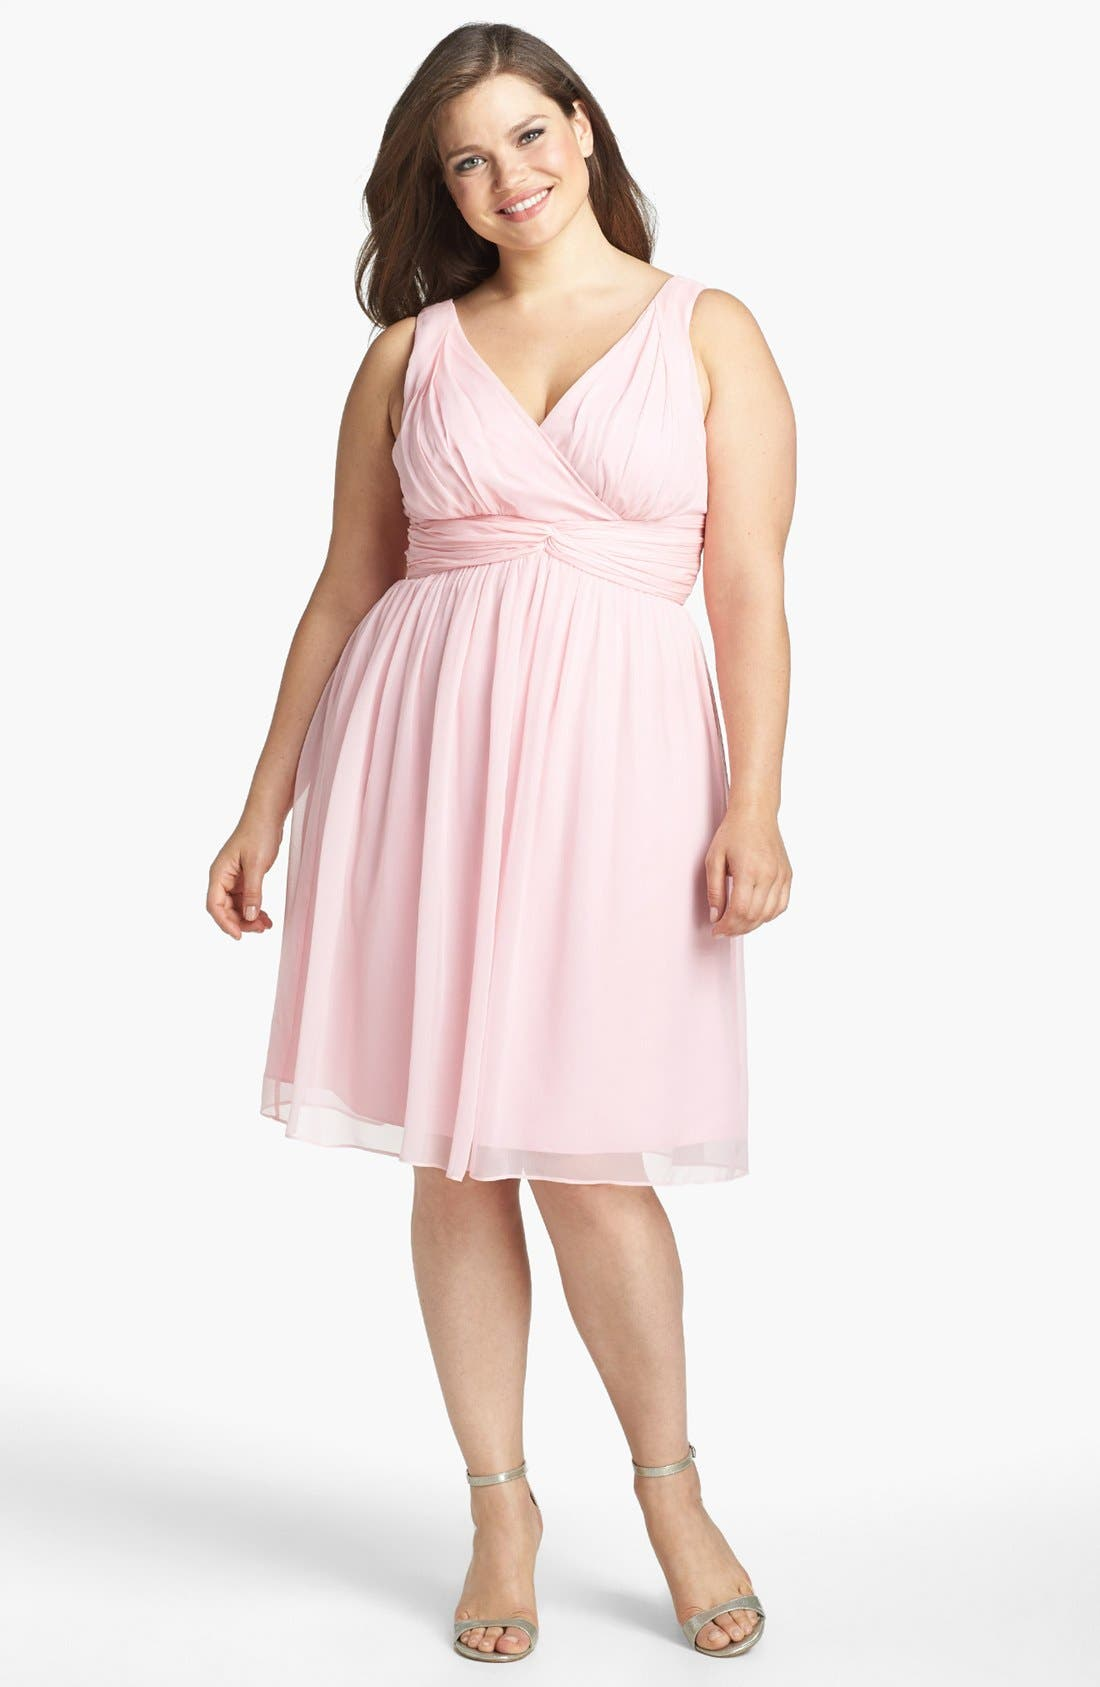 Alternate Image 1 Selected - Donna Morgan 'Jessie' Twist Waist Chiffon Fit & Flare Dress (Plus Size)